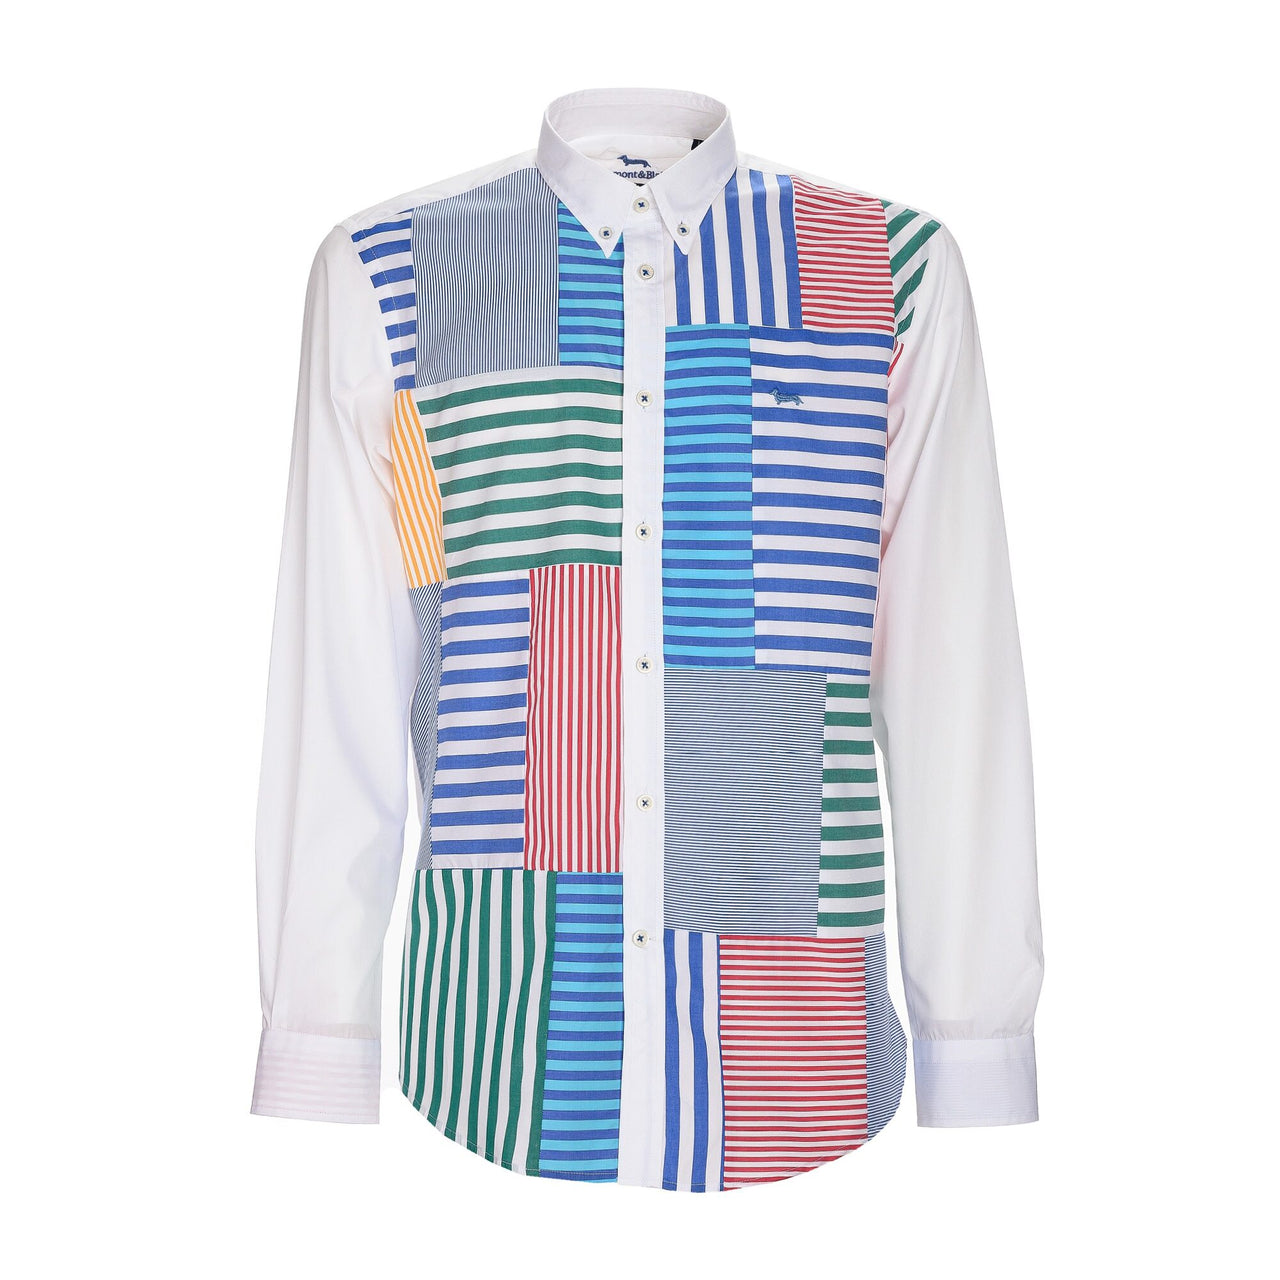 Harmont & Blaine Striped Patchwork Shirt - Multicolor